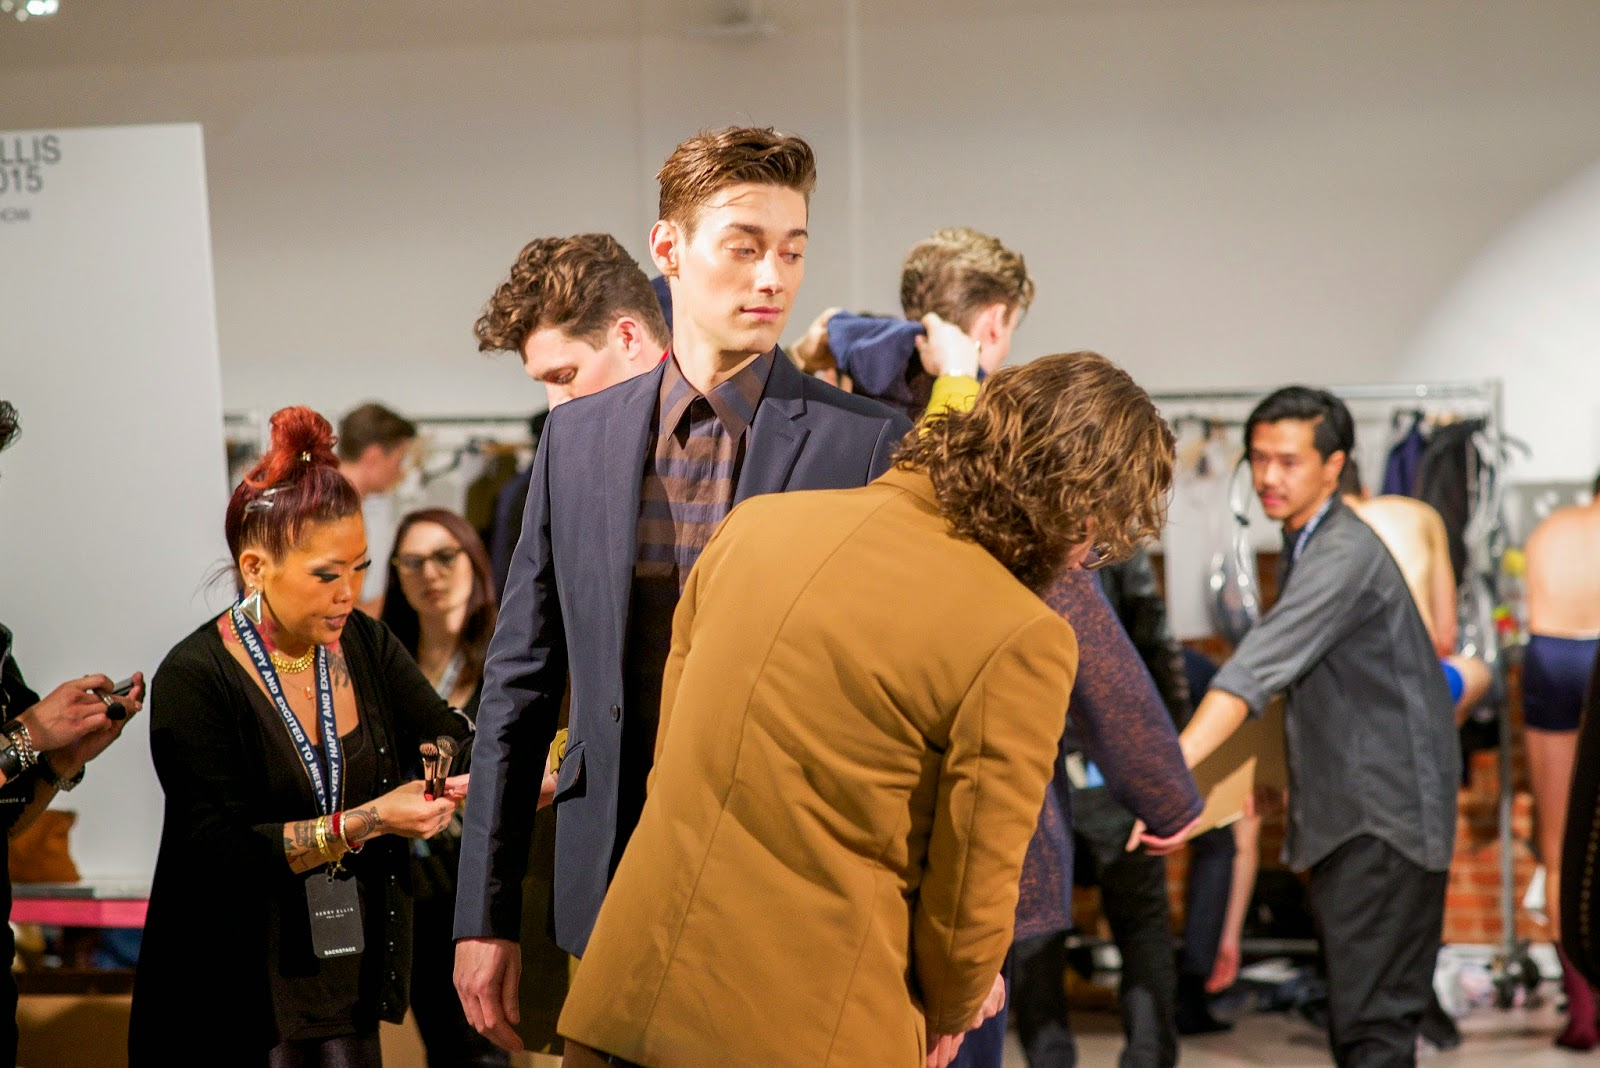 Backstage Moments #VeryPerry – The Metro Man